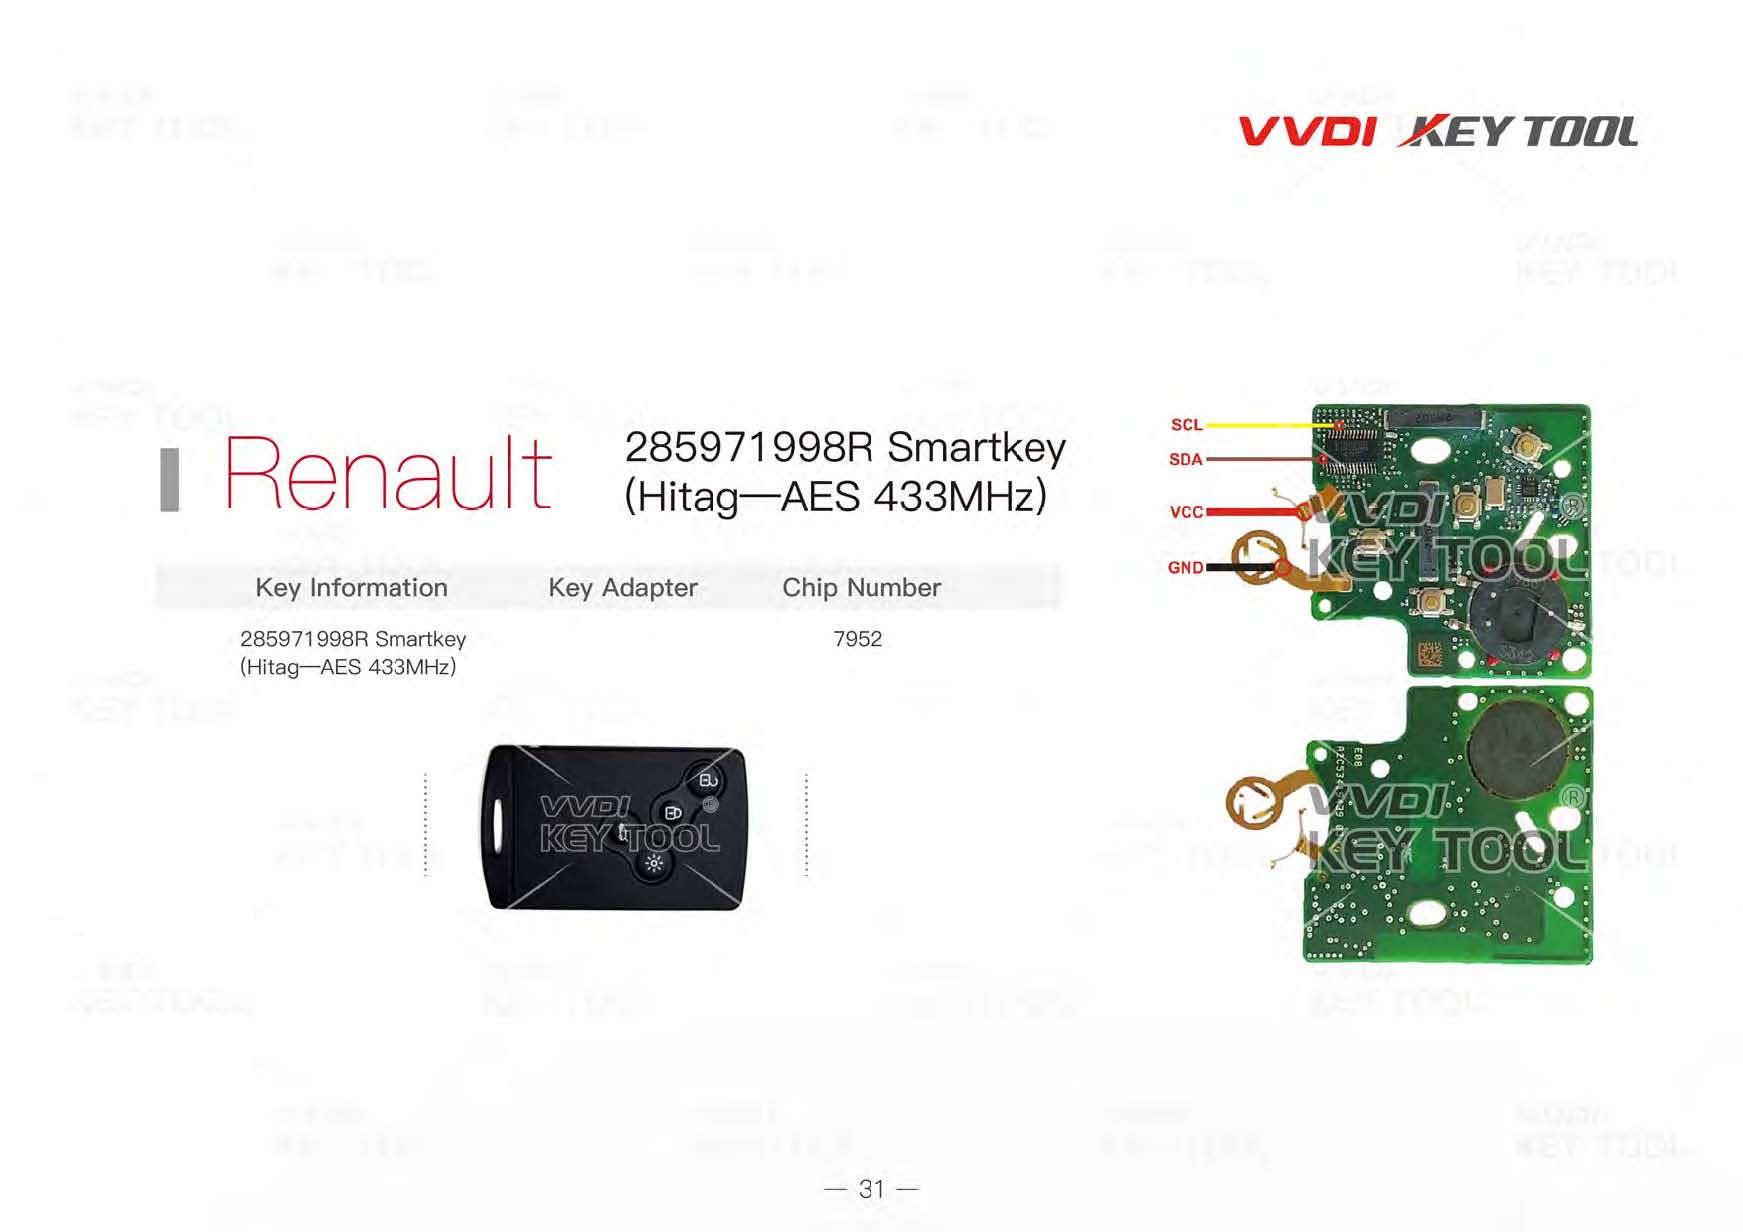 vvdi-key-tool-renew-diagram-31